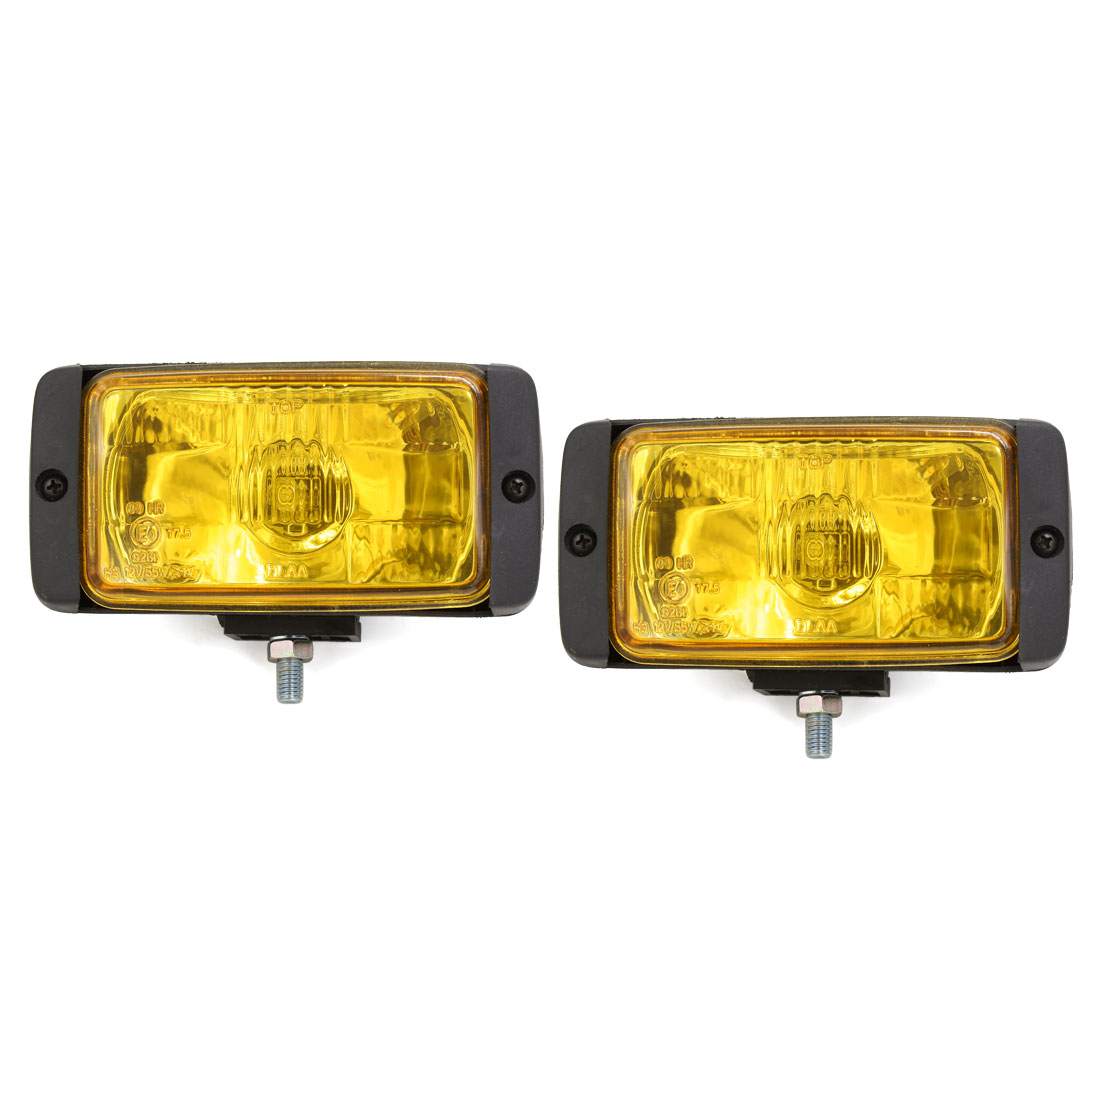 2 Pcs Rectangle Shaped H3 Yellow Halogen Light Car Fog Driving Lamp DC 12V 55W